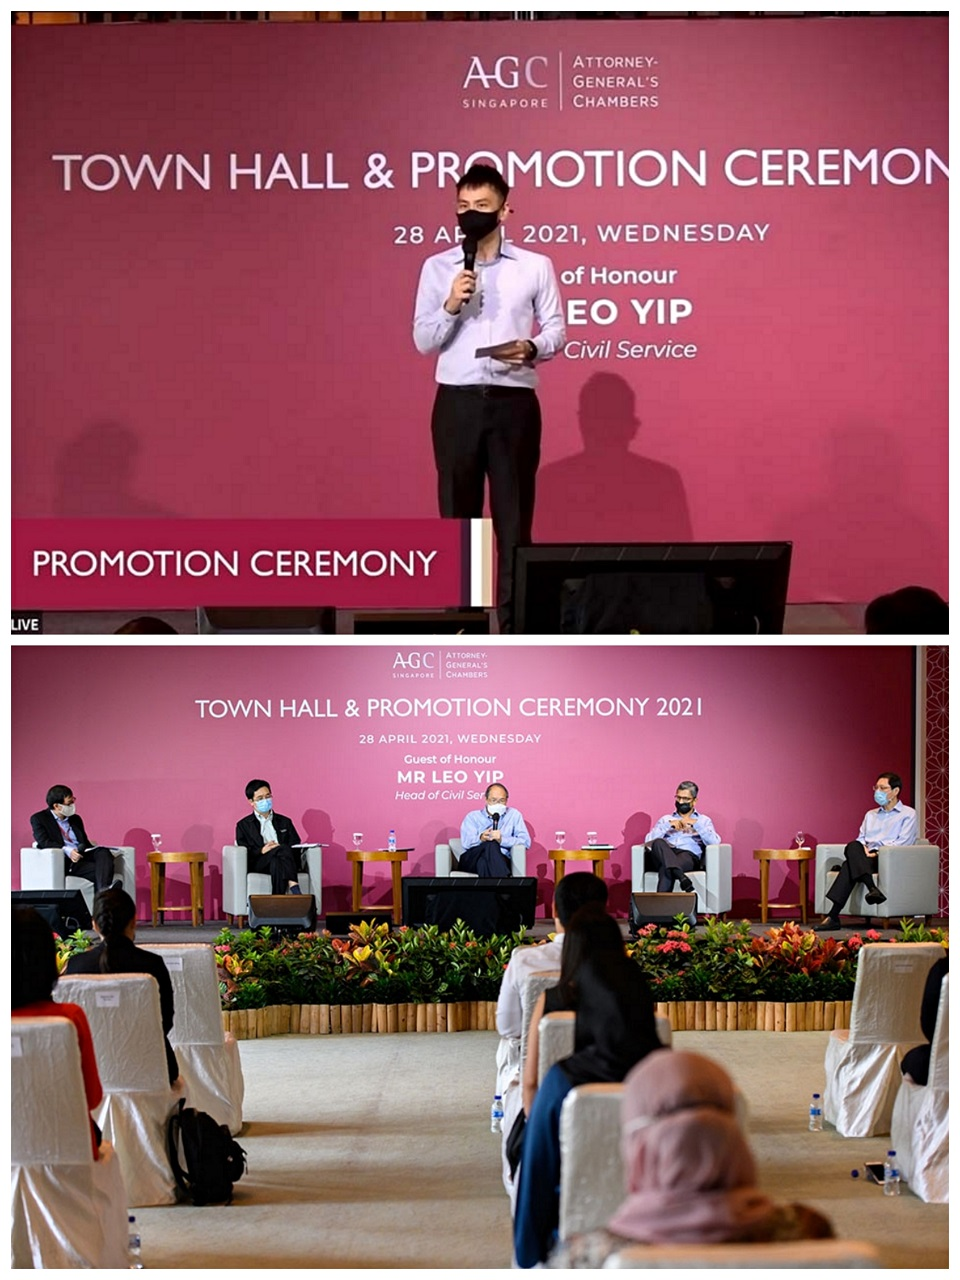 AGC townhall and promotion ceremony - hybrid event emcee lester leo